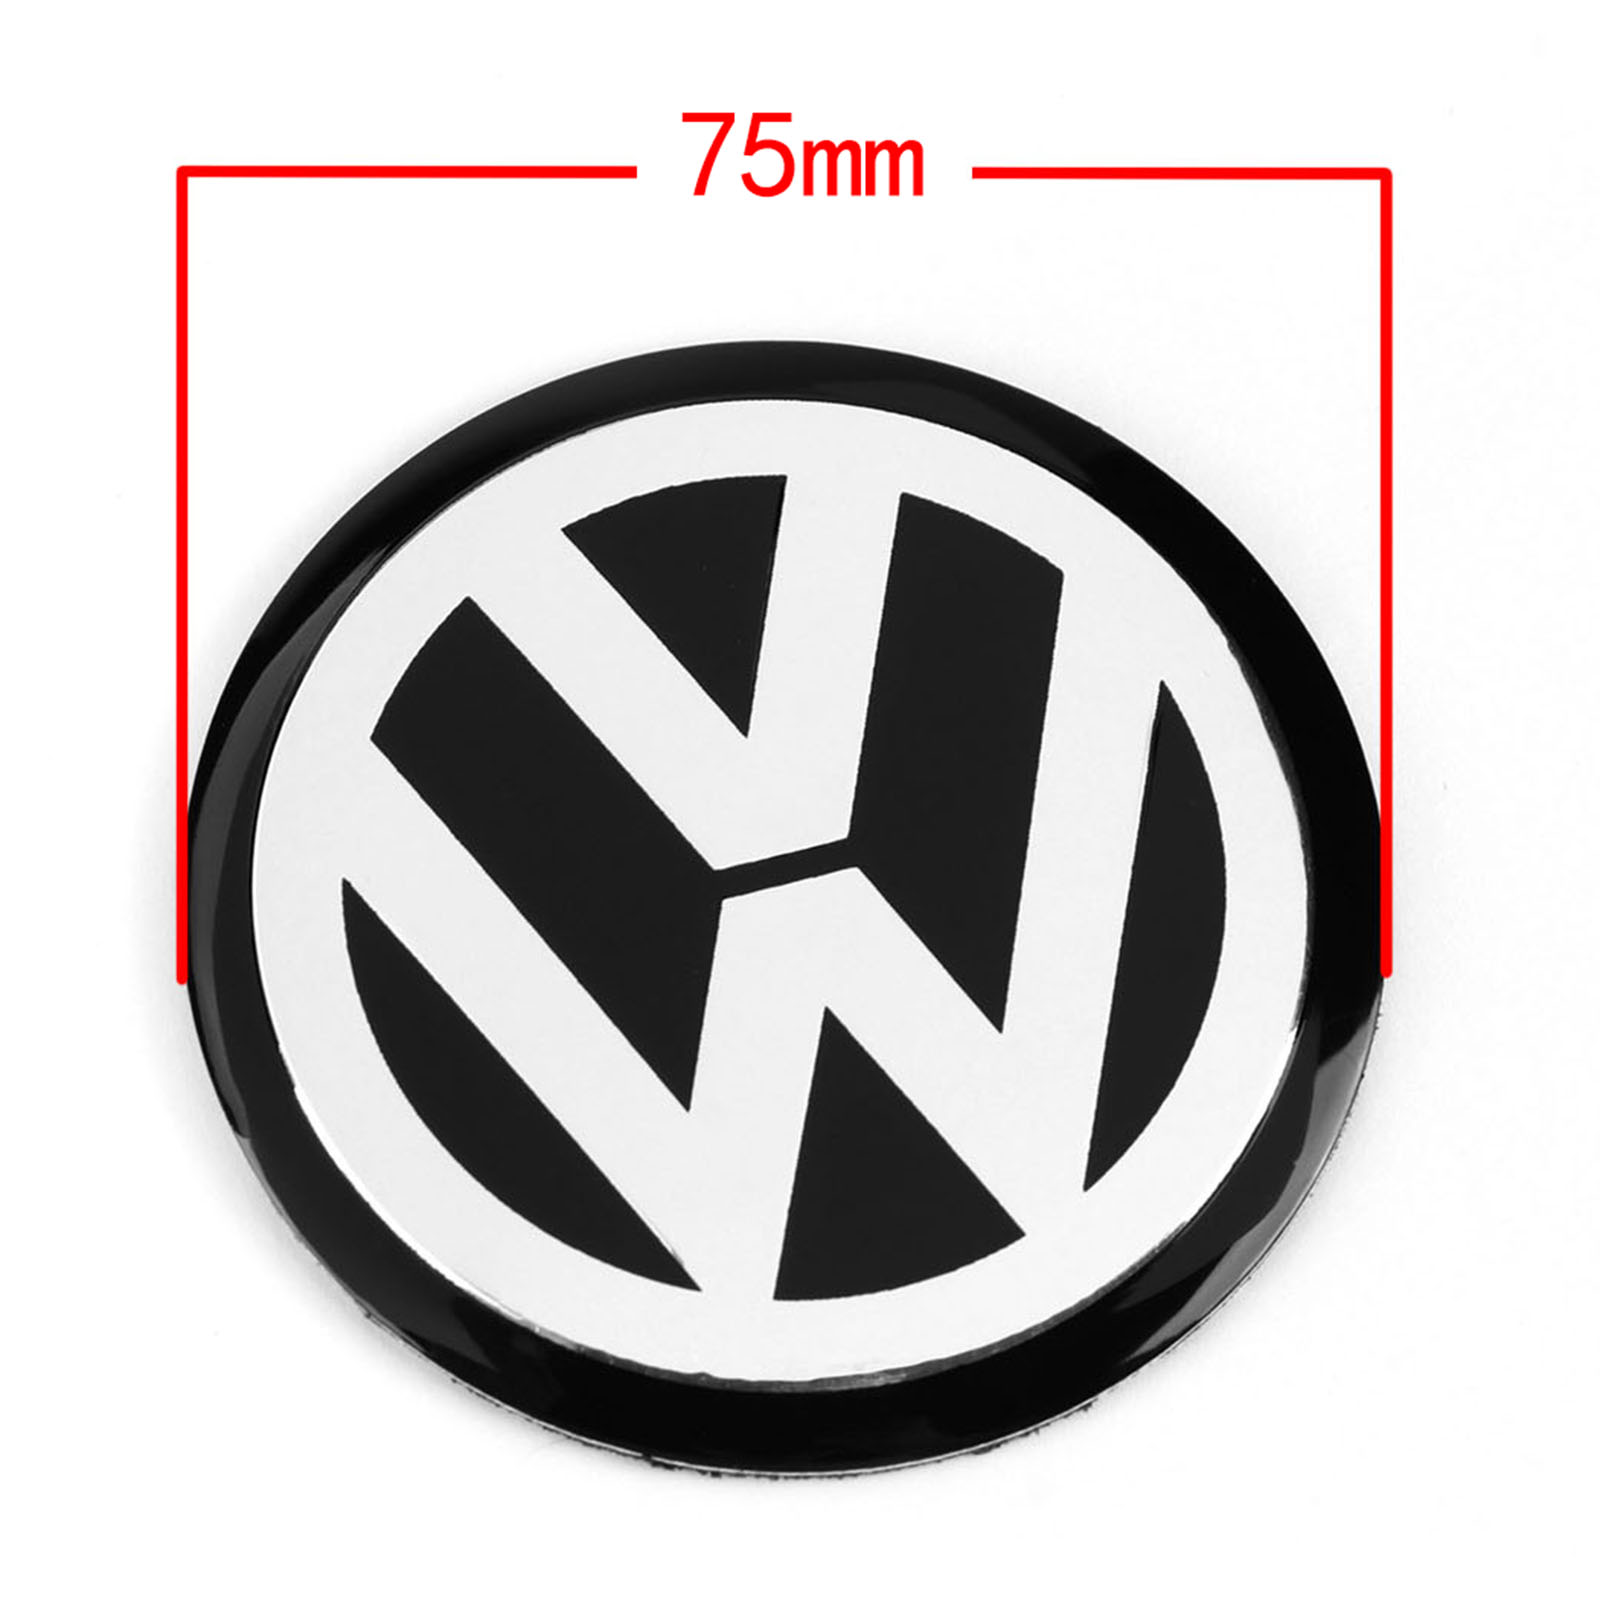 4pcs 75MM Black Car Wheel Center Hub Cap Badge Emblem Decal Wheel Sticker Styling For VW